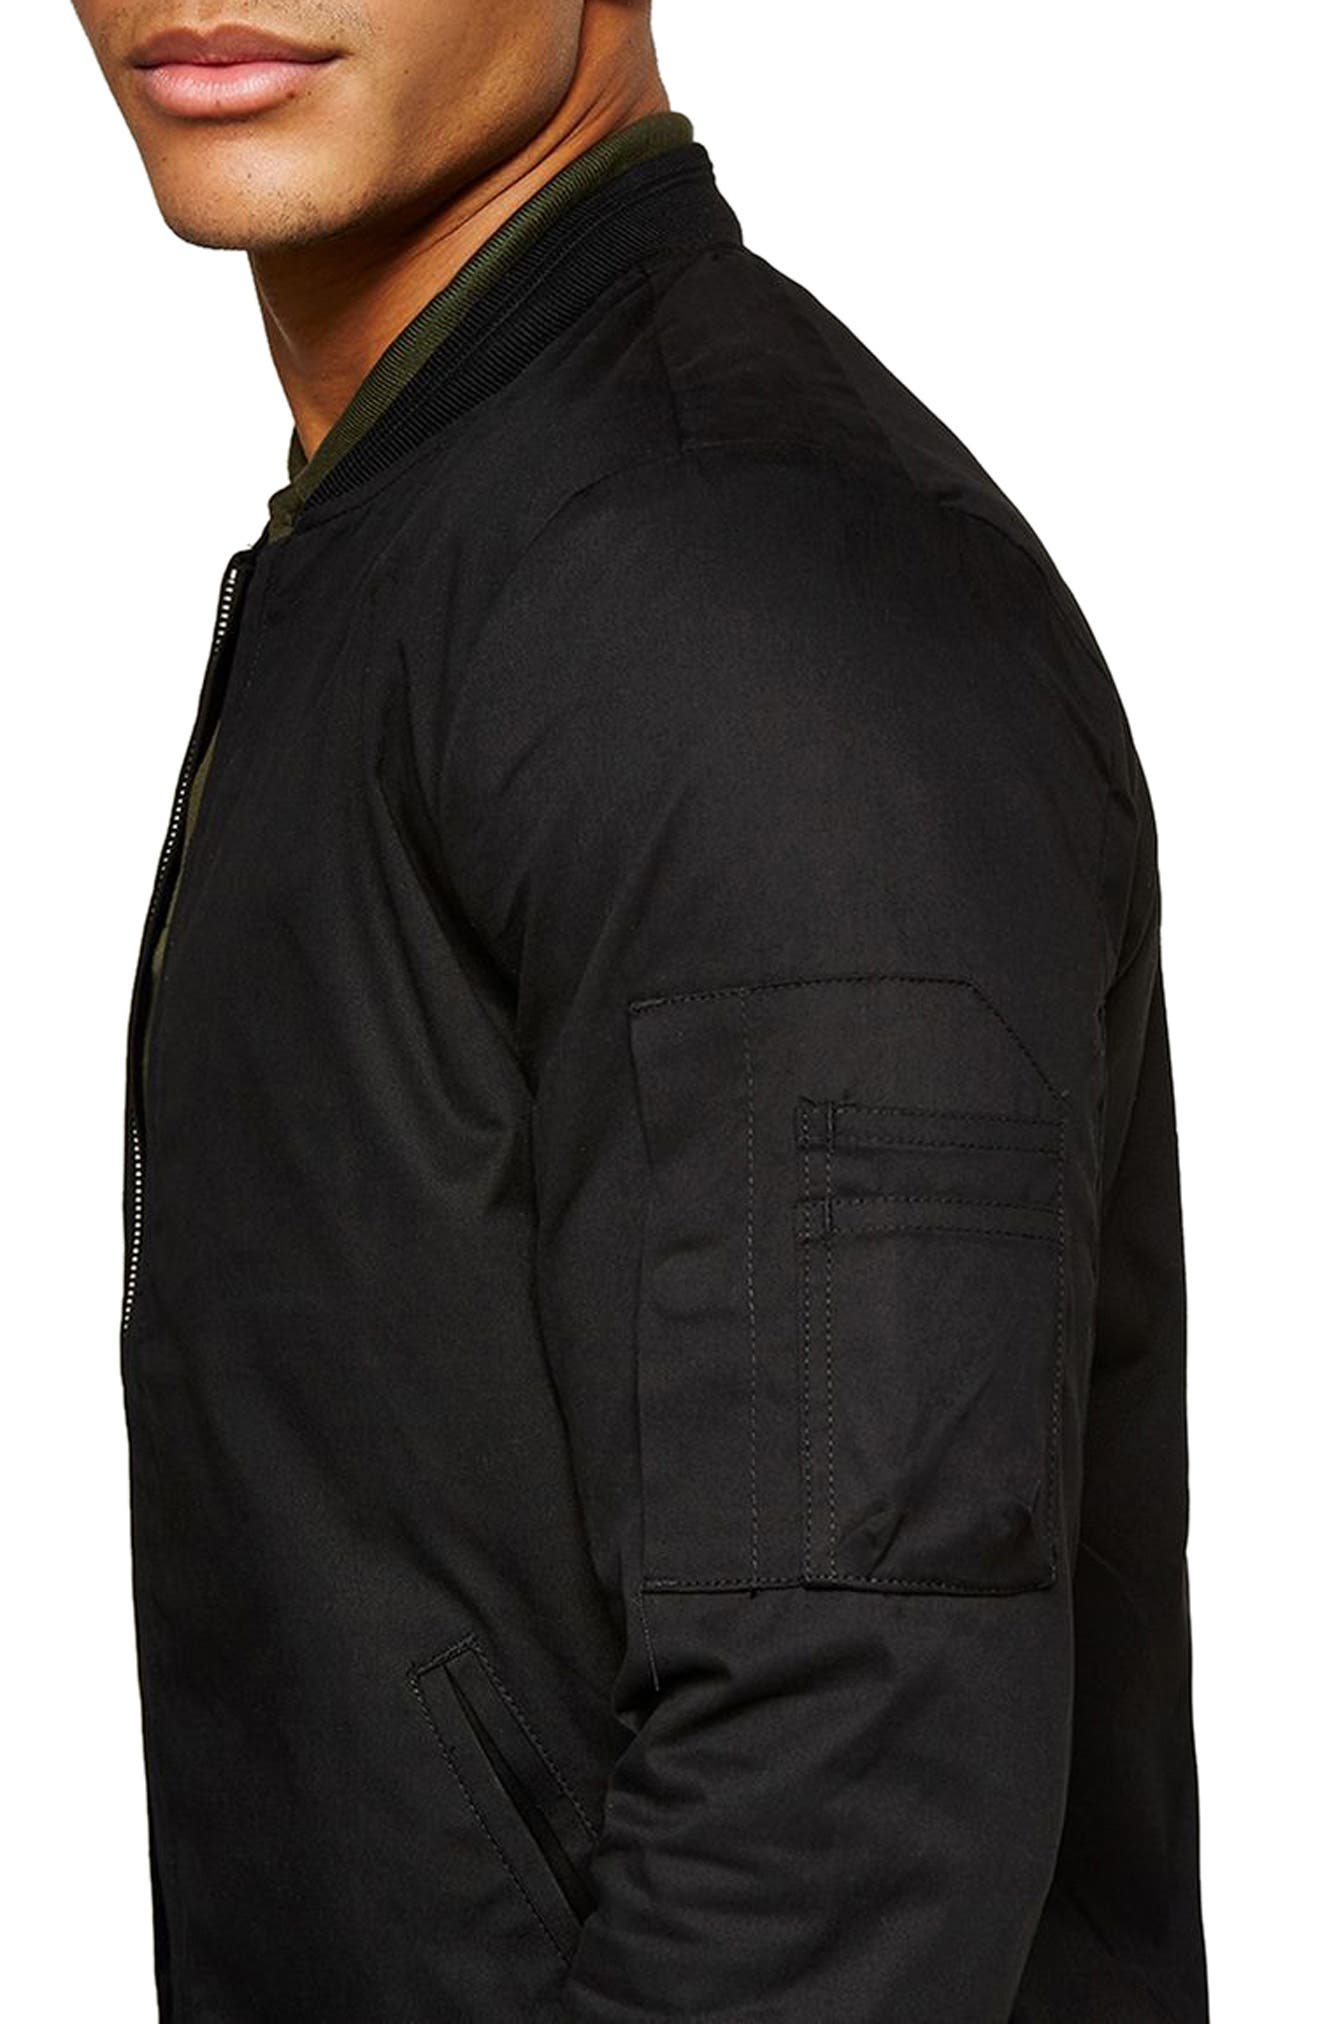 Muscle Fit Bomber Jacket,                             Alternate thumbnail 3, color,                             001